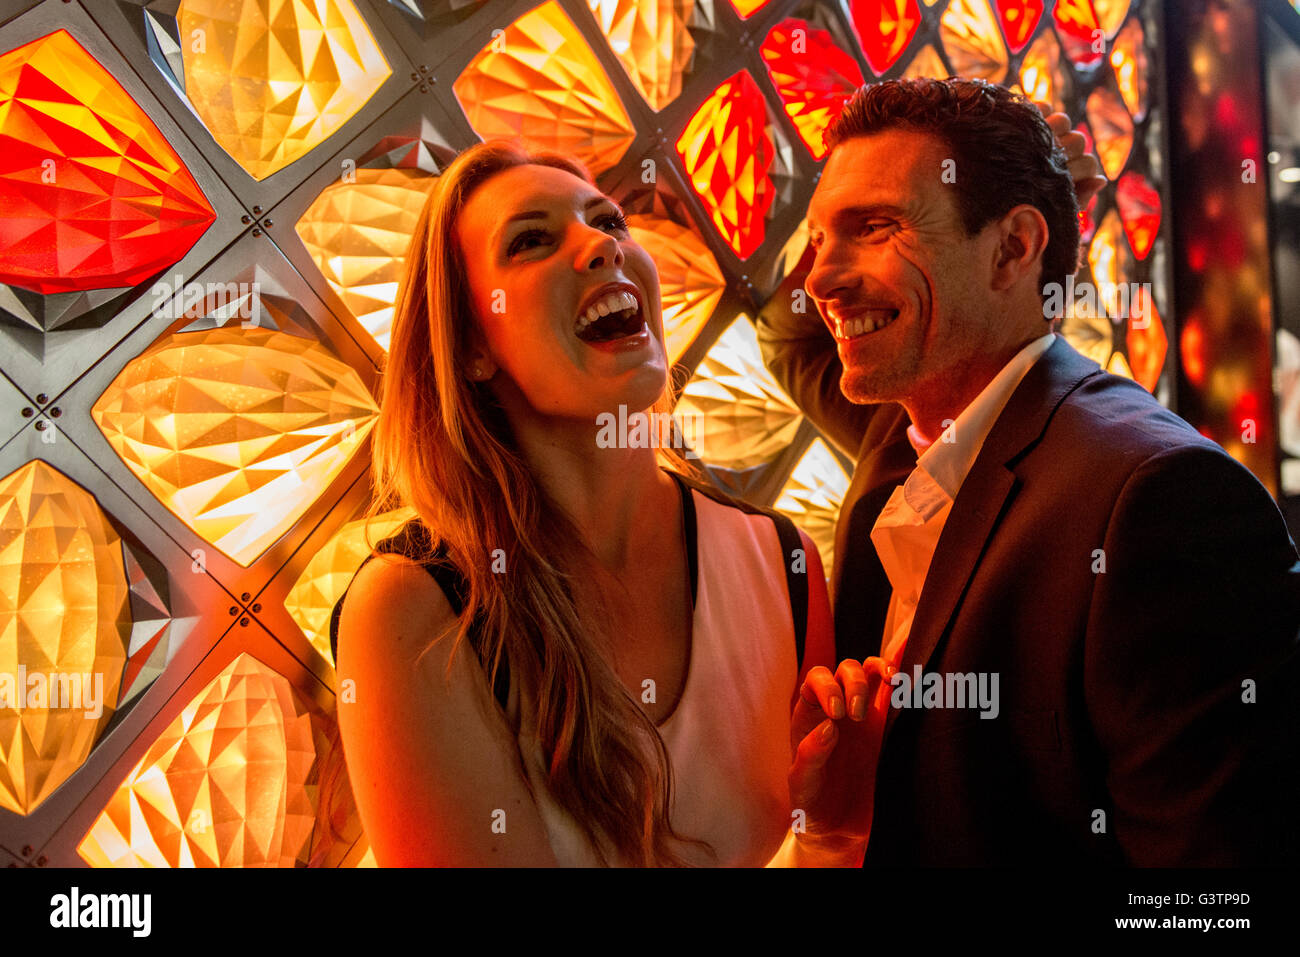 A smartly dressed couple laughing in front of a light fixture on the South Bank in London. - Stock Image